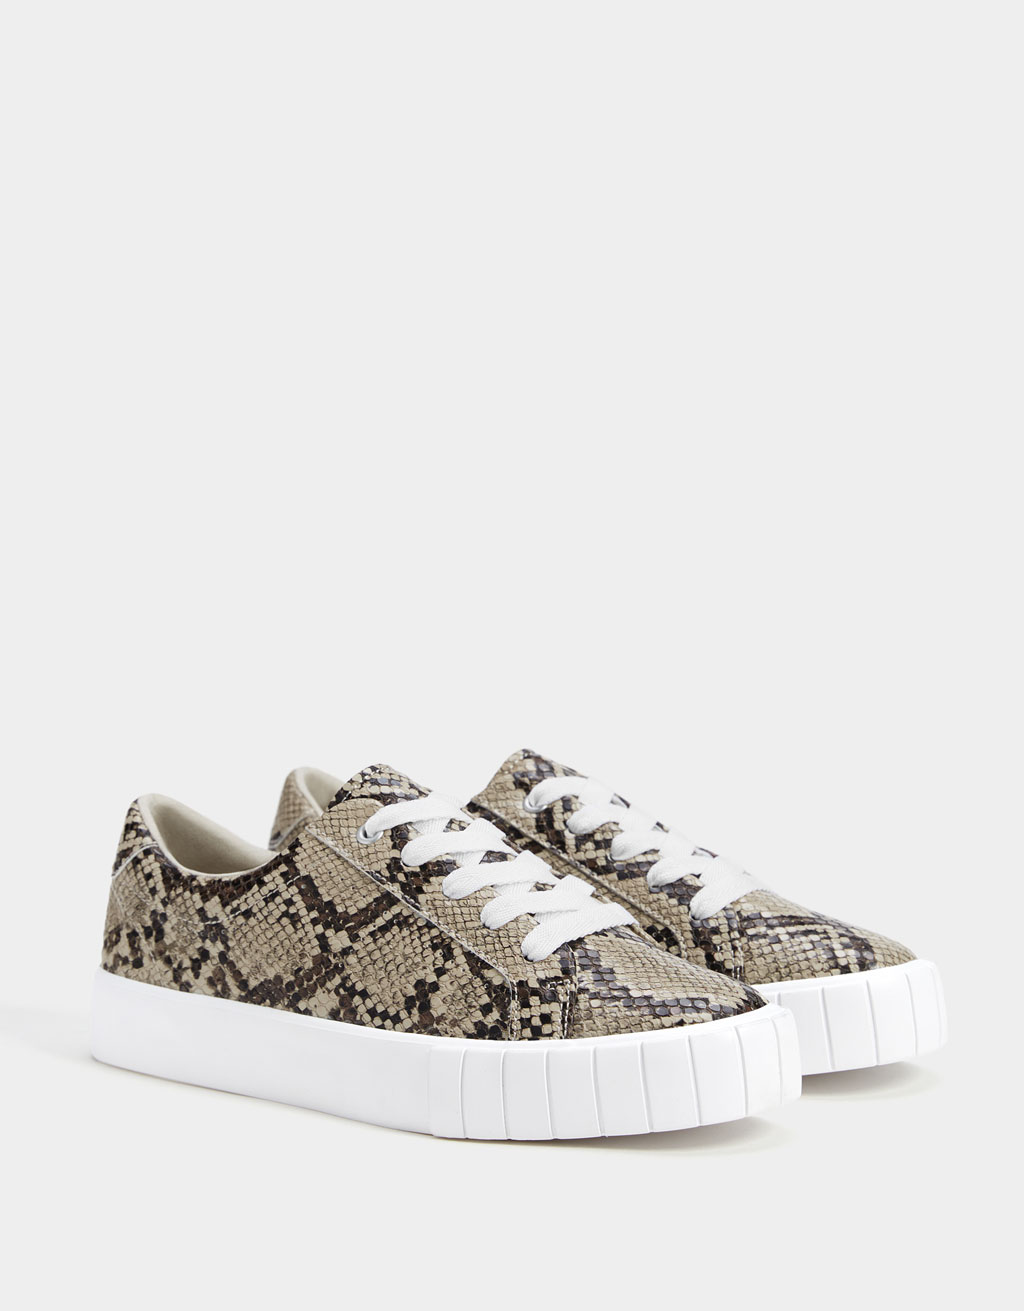 Sneakers con stampa animalier in toni naturali